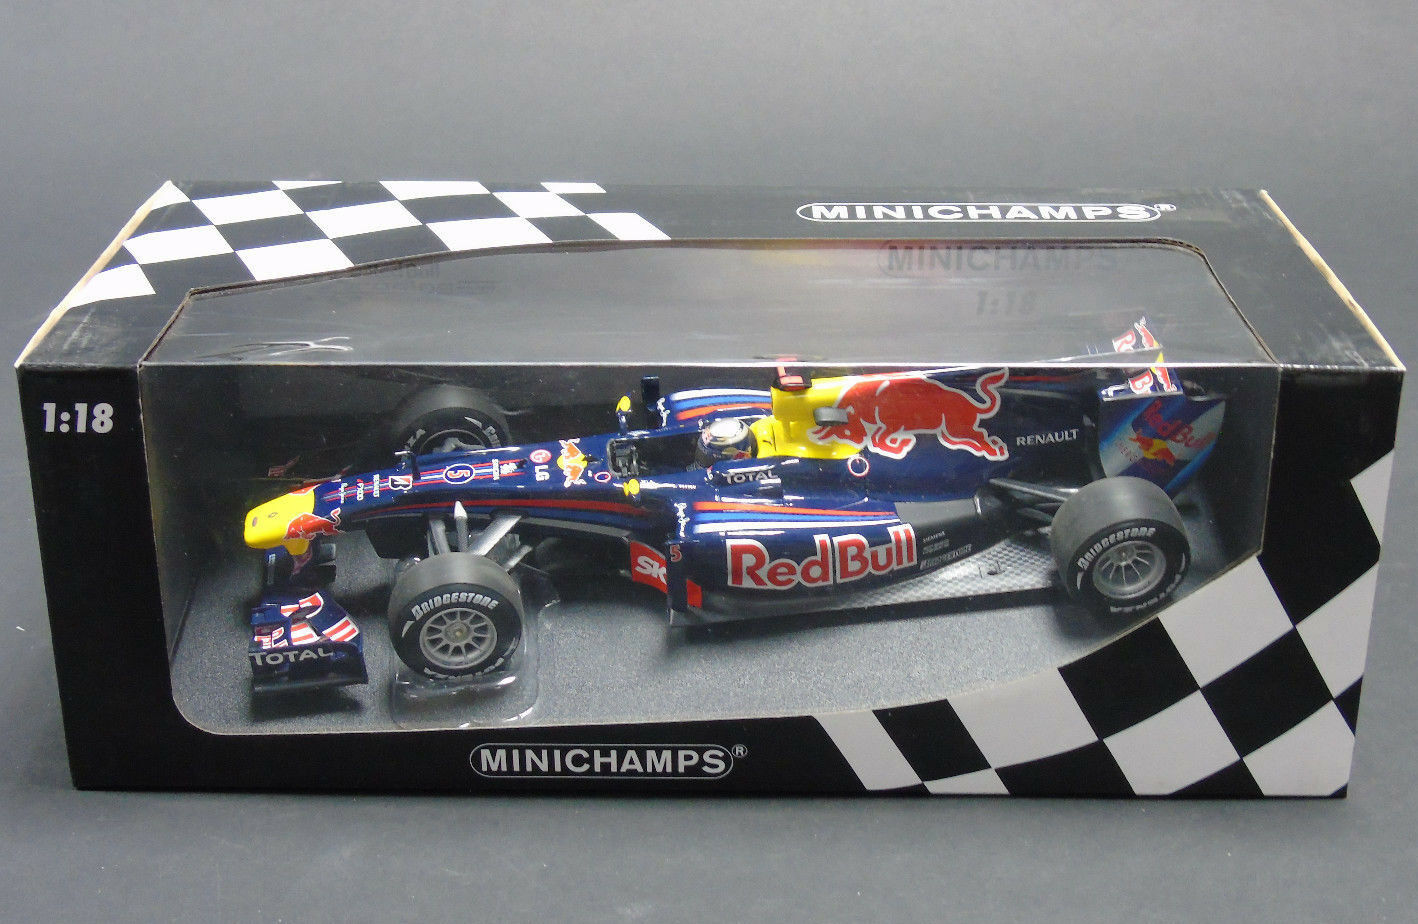 110 100205 Minichamps Red Bull Racing Renault RB6 1 18 Scale Diecast New Boxed